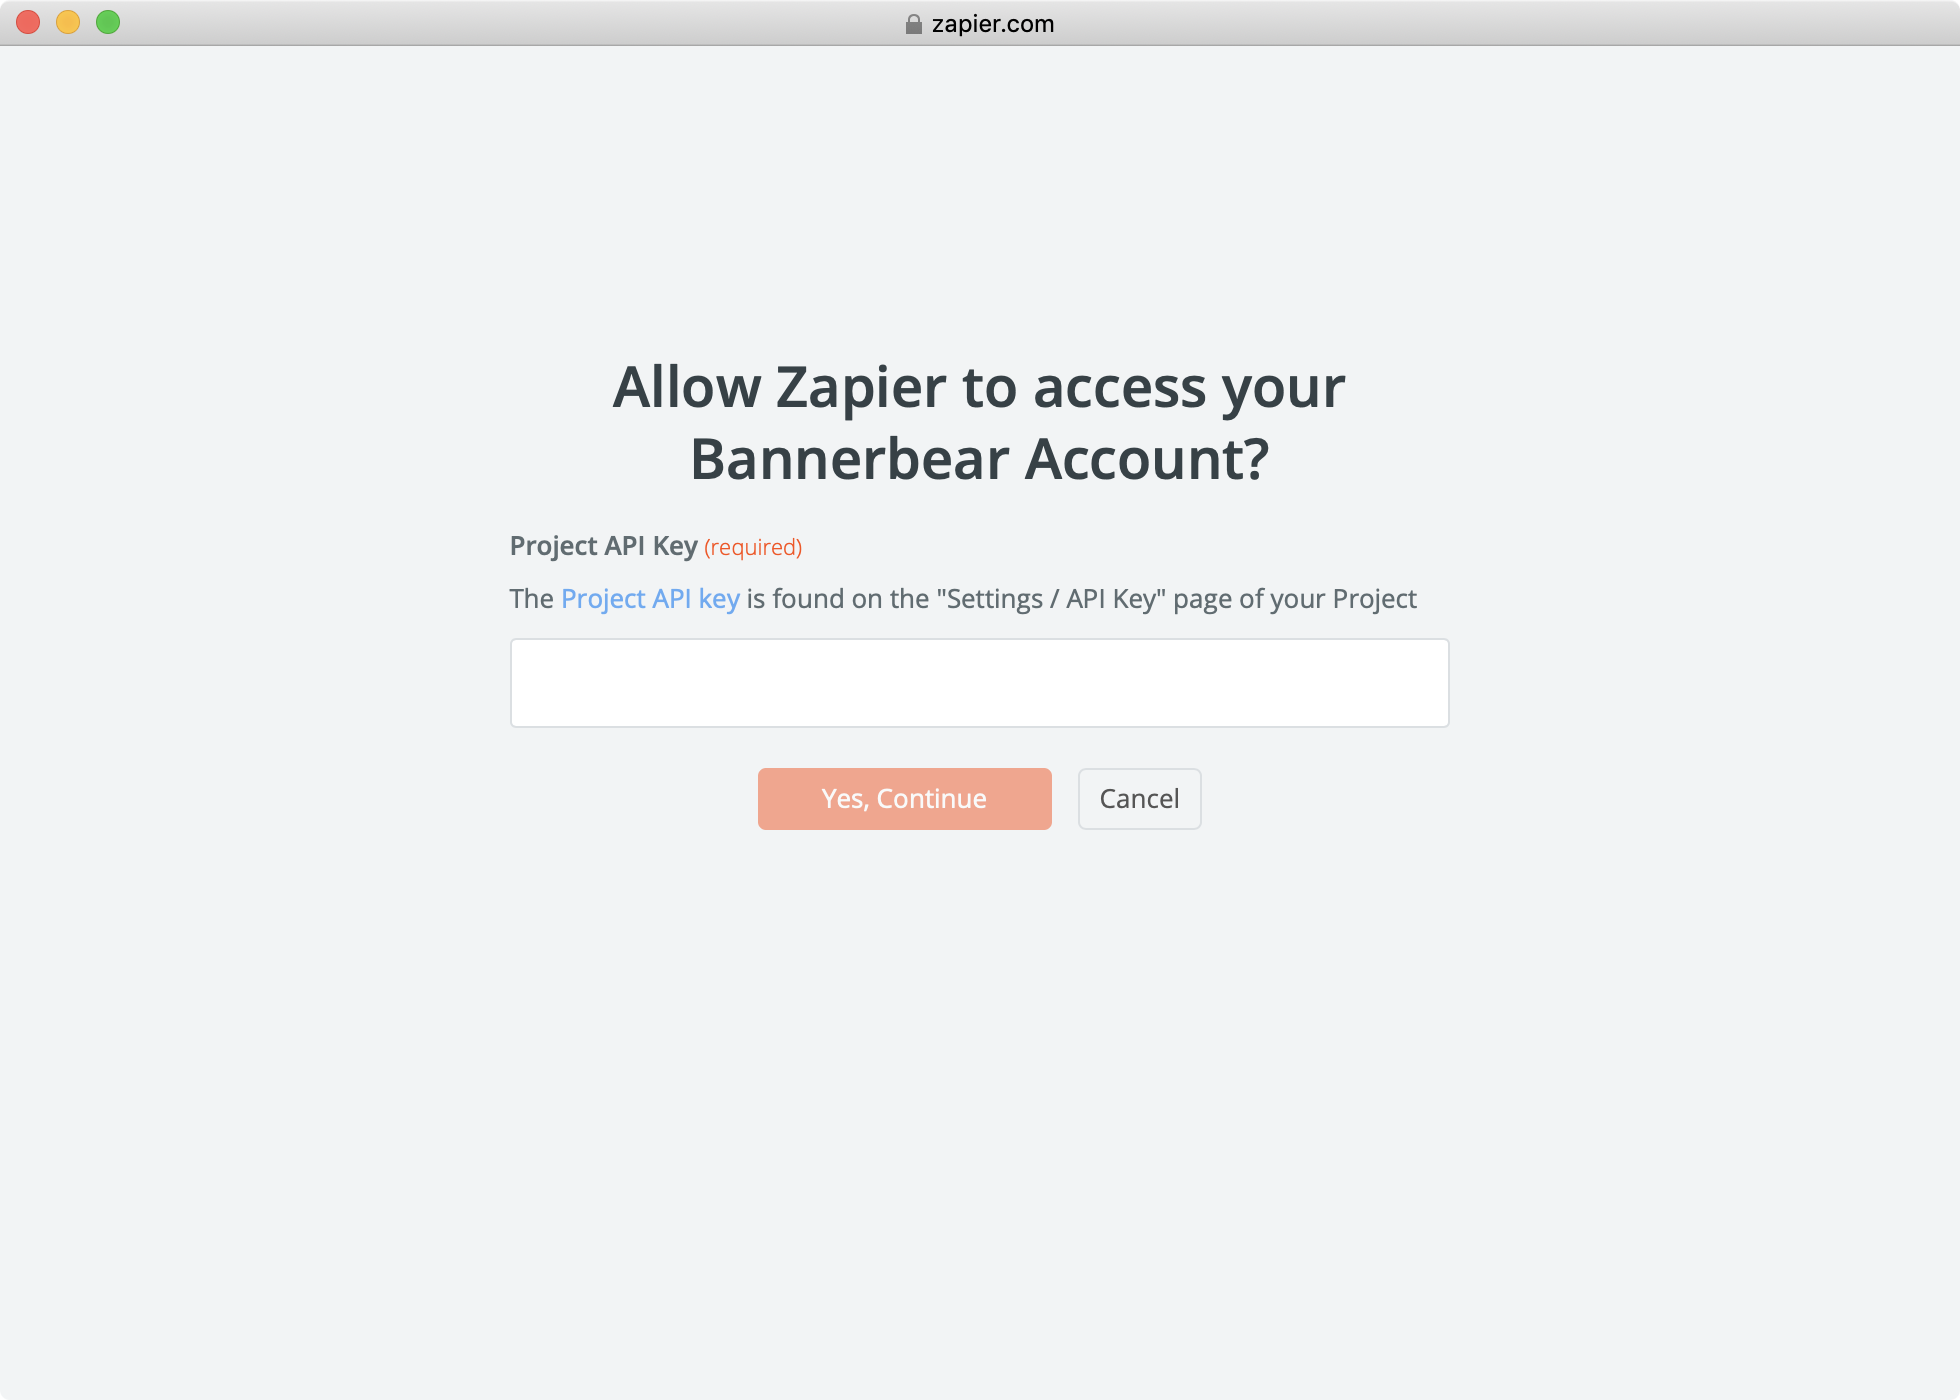 ></div></figure><h2>Selecting NYT data to push to Bannerbear</h2><p>Once you have successfully authenticated, after clicking